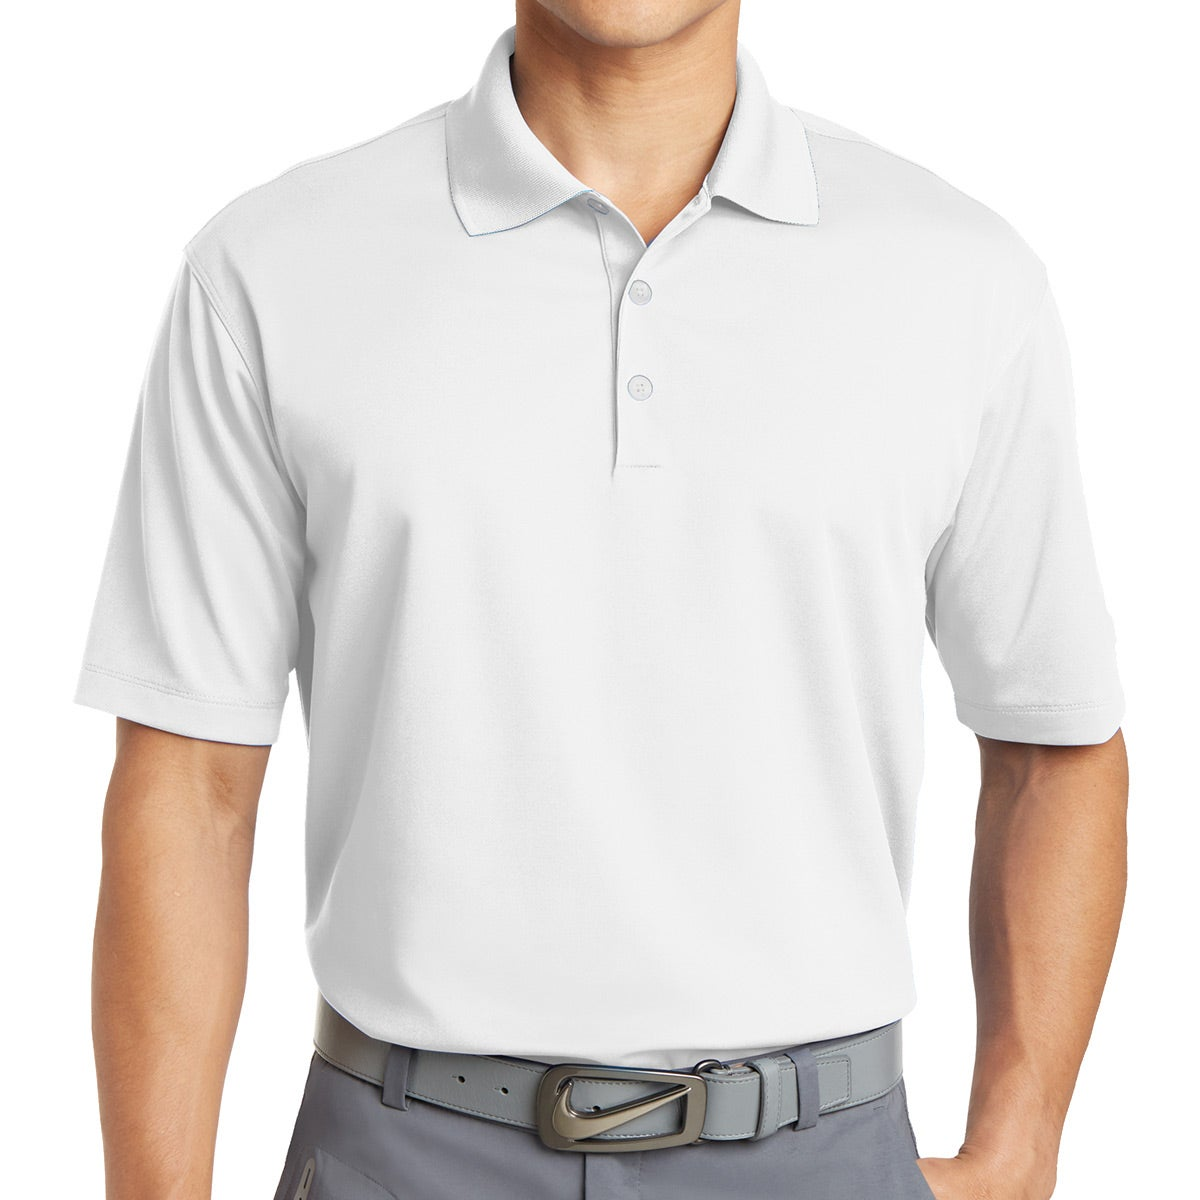 Promotional White Nike Golf Dri Fit Micro Pique Polo Shirts With